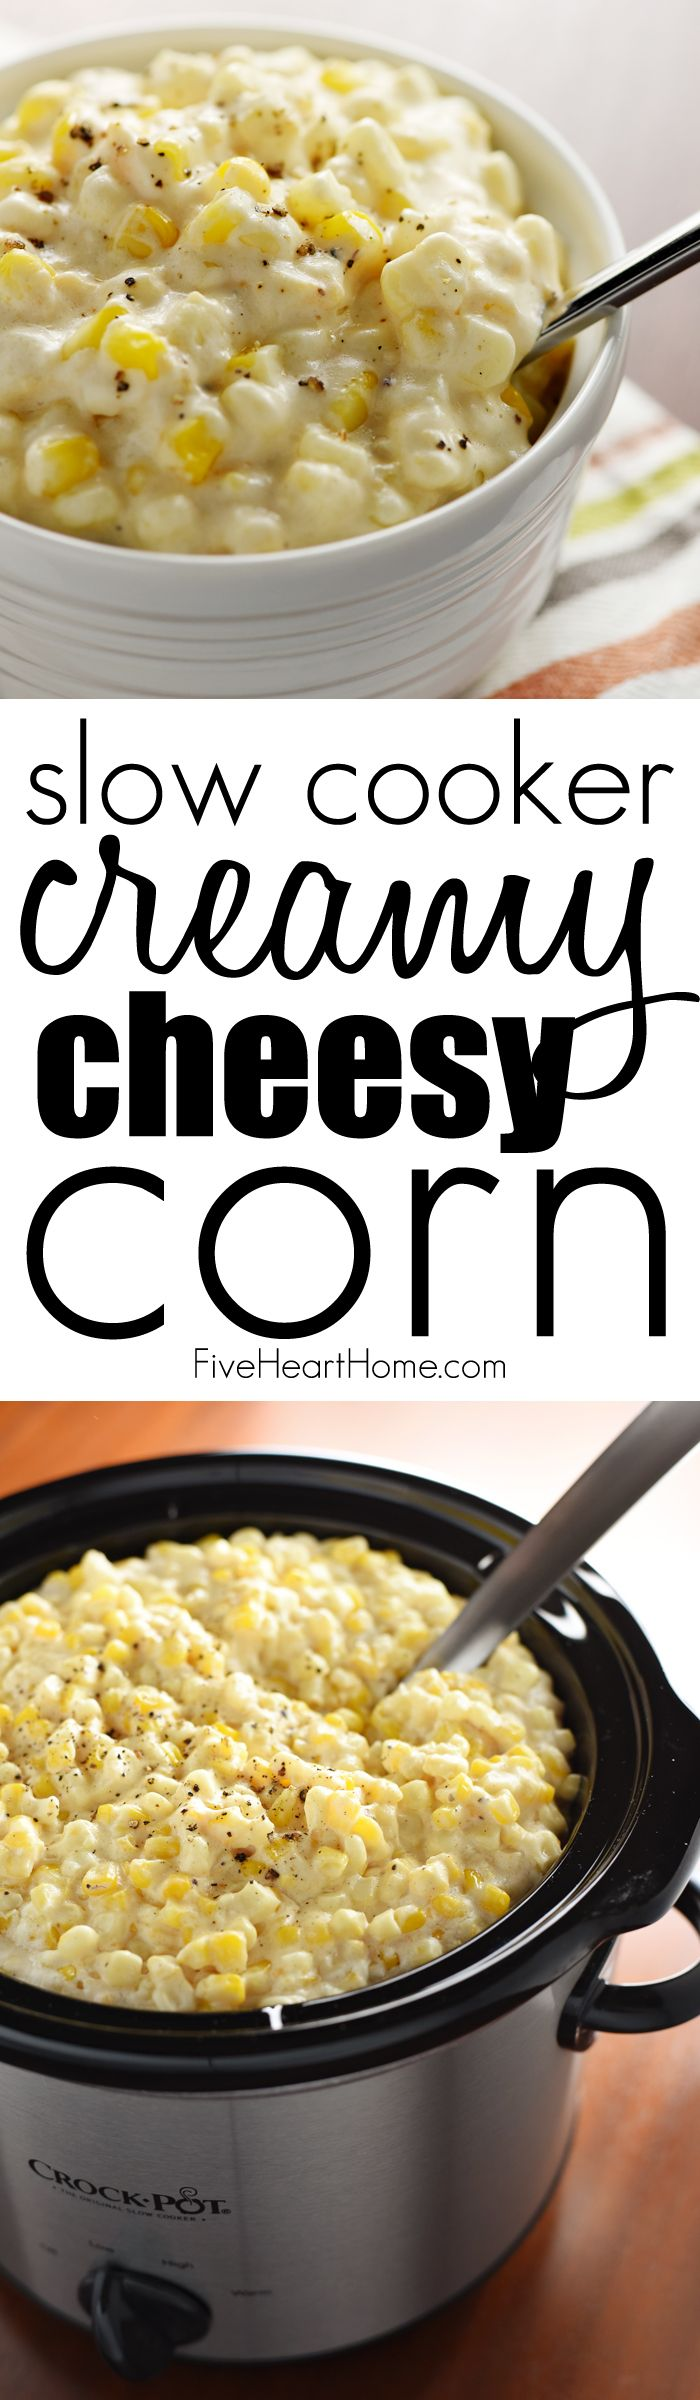 Slow Cooker Creamy Cheesy Corn ~ a rich, comforting side dish that's the perfect addition to any holiday menu...because not only is this recipe delicious, but it also frees up the stove and oven!   FiveHeartHome.com